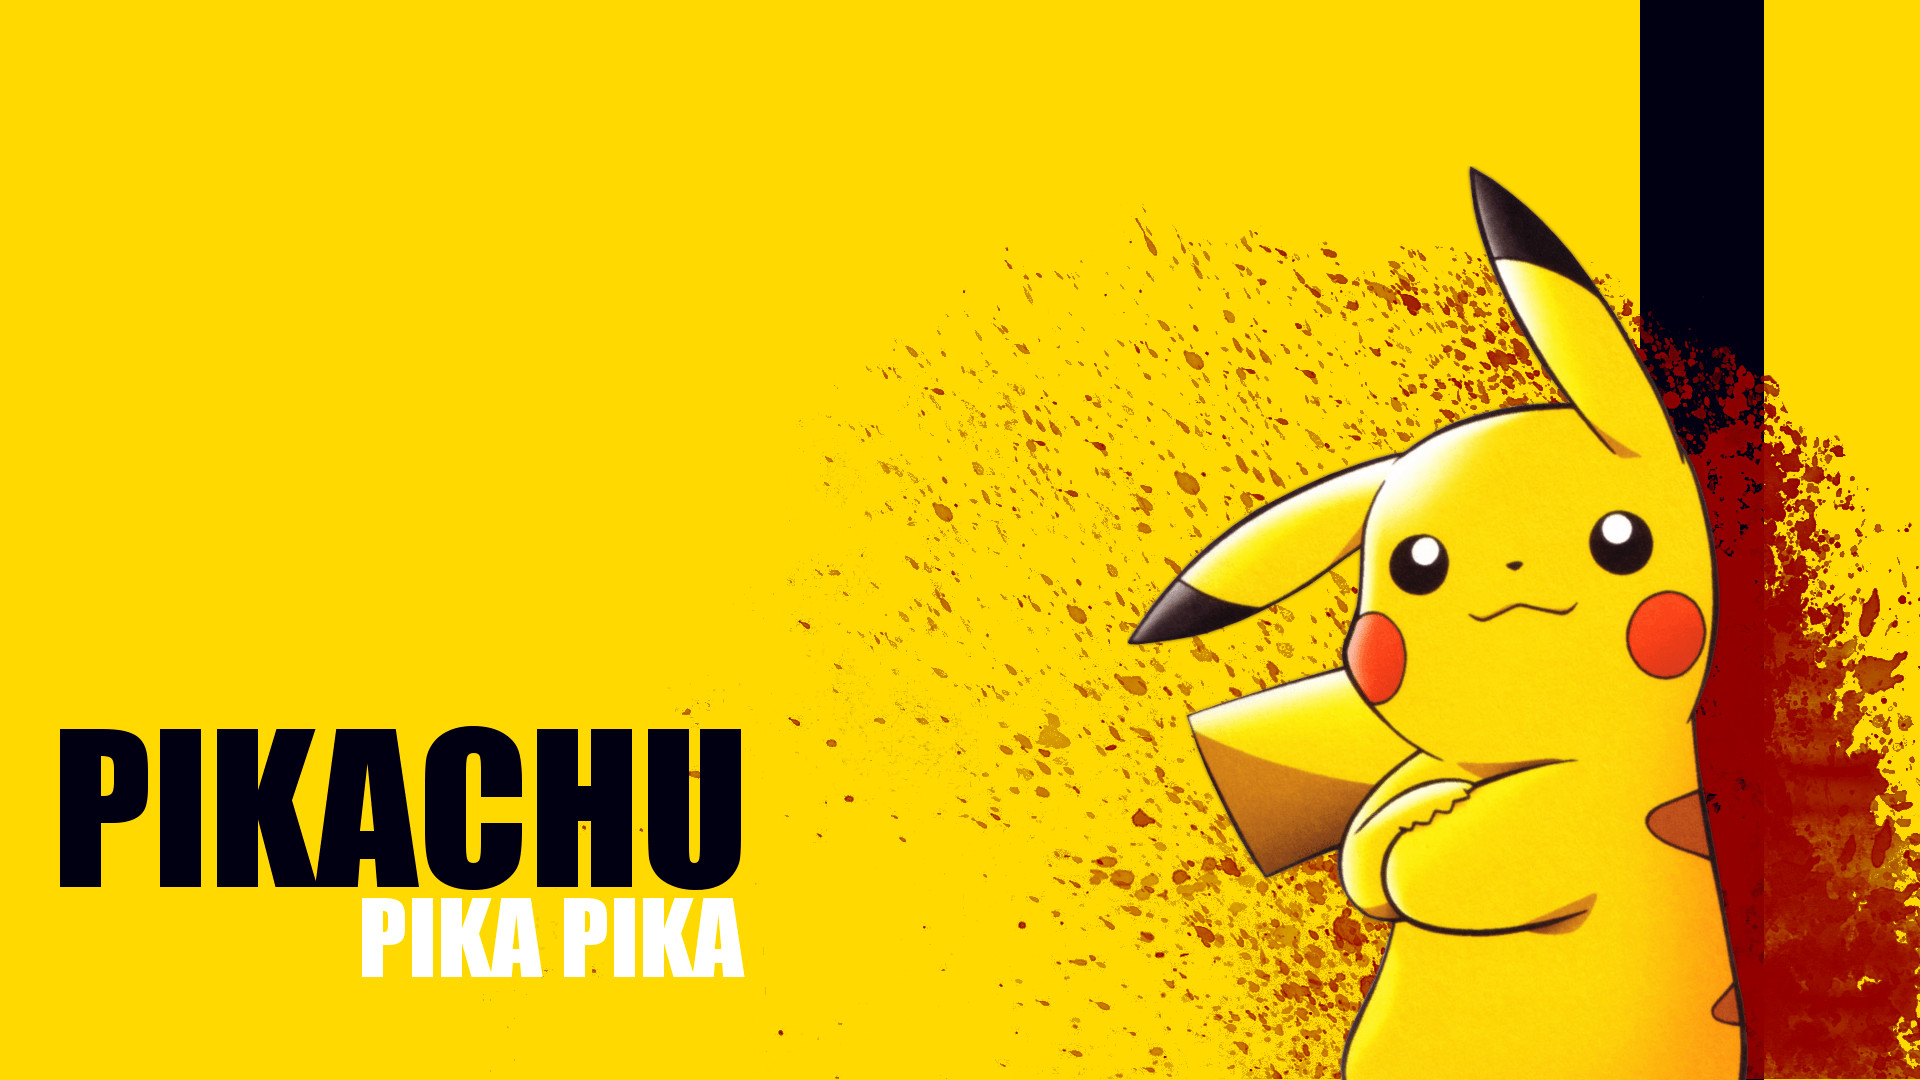 1920x1080 Desktop Full Hd Pikachu Pictures On Cutest Images Fully High .